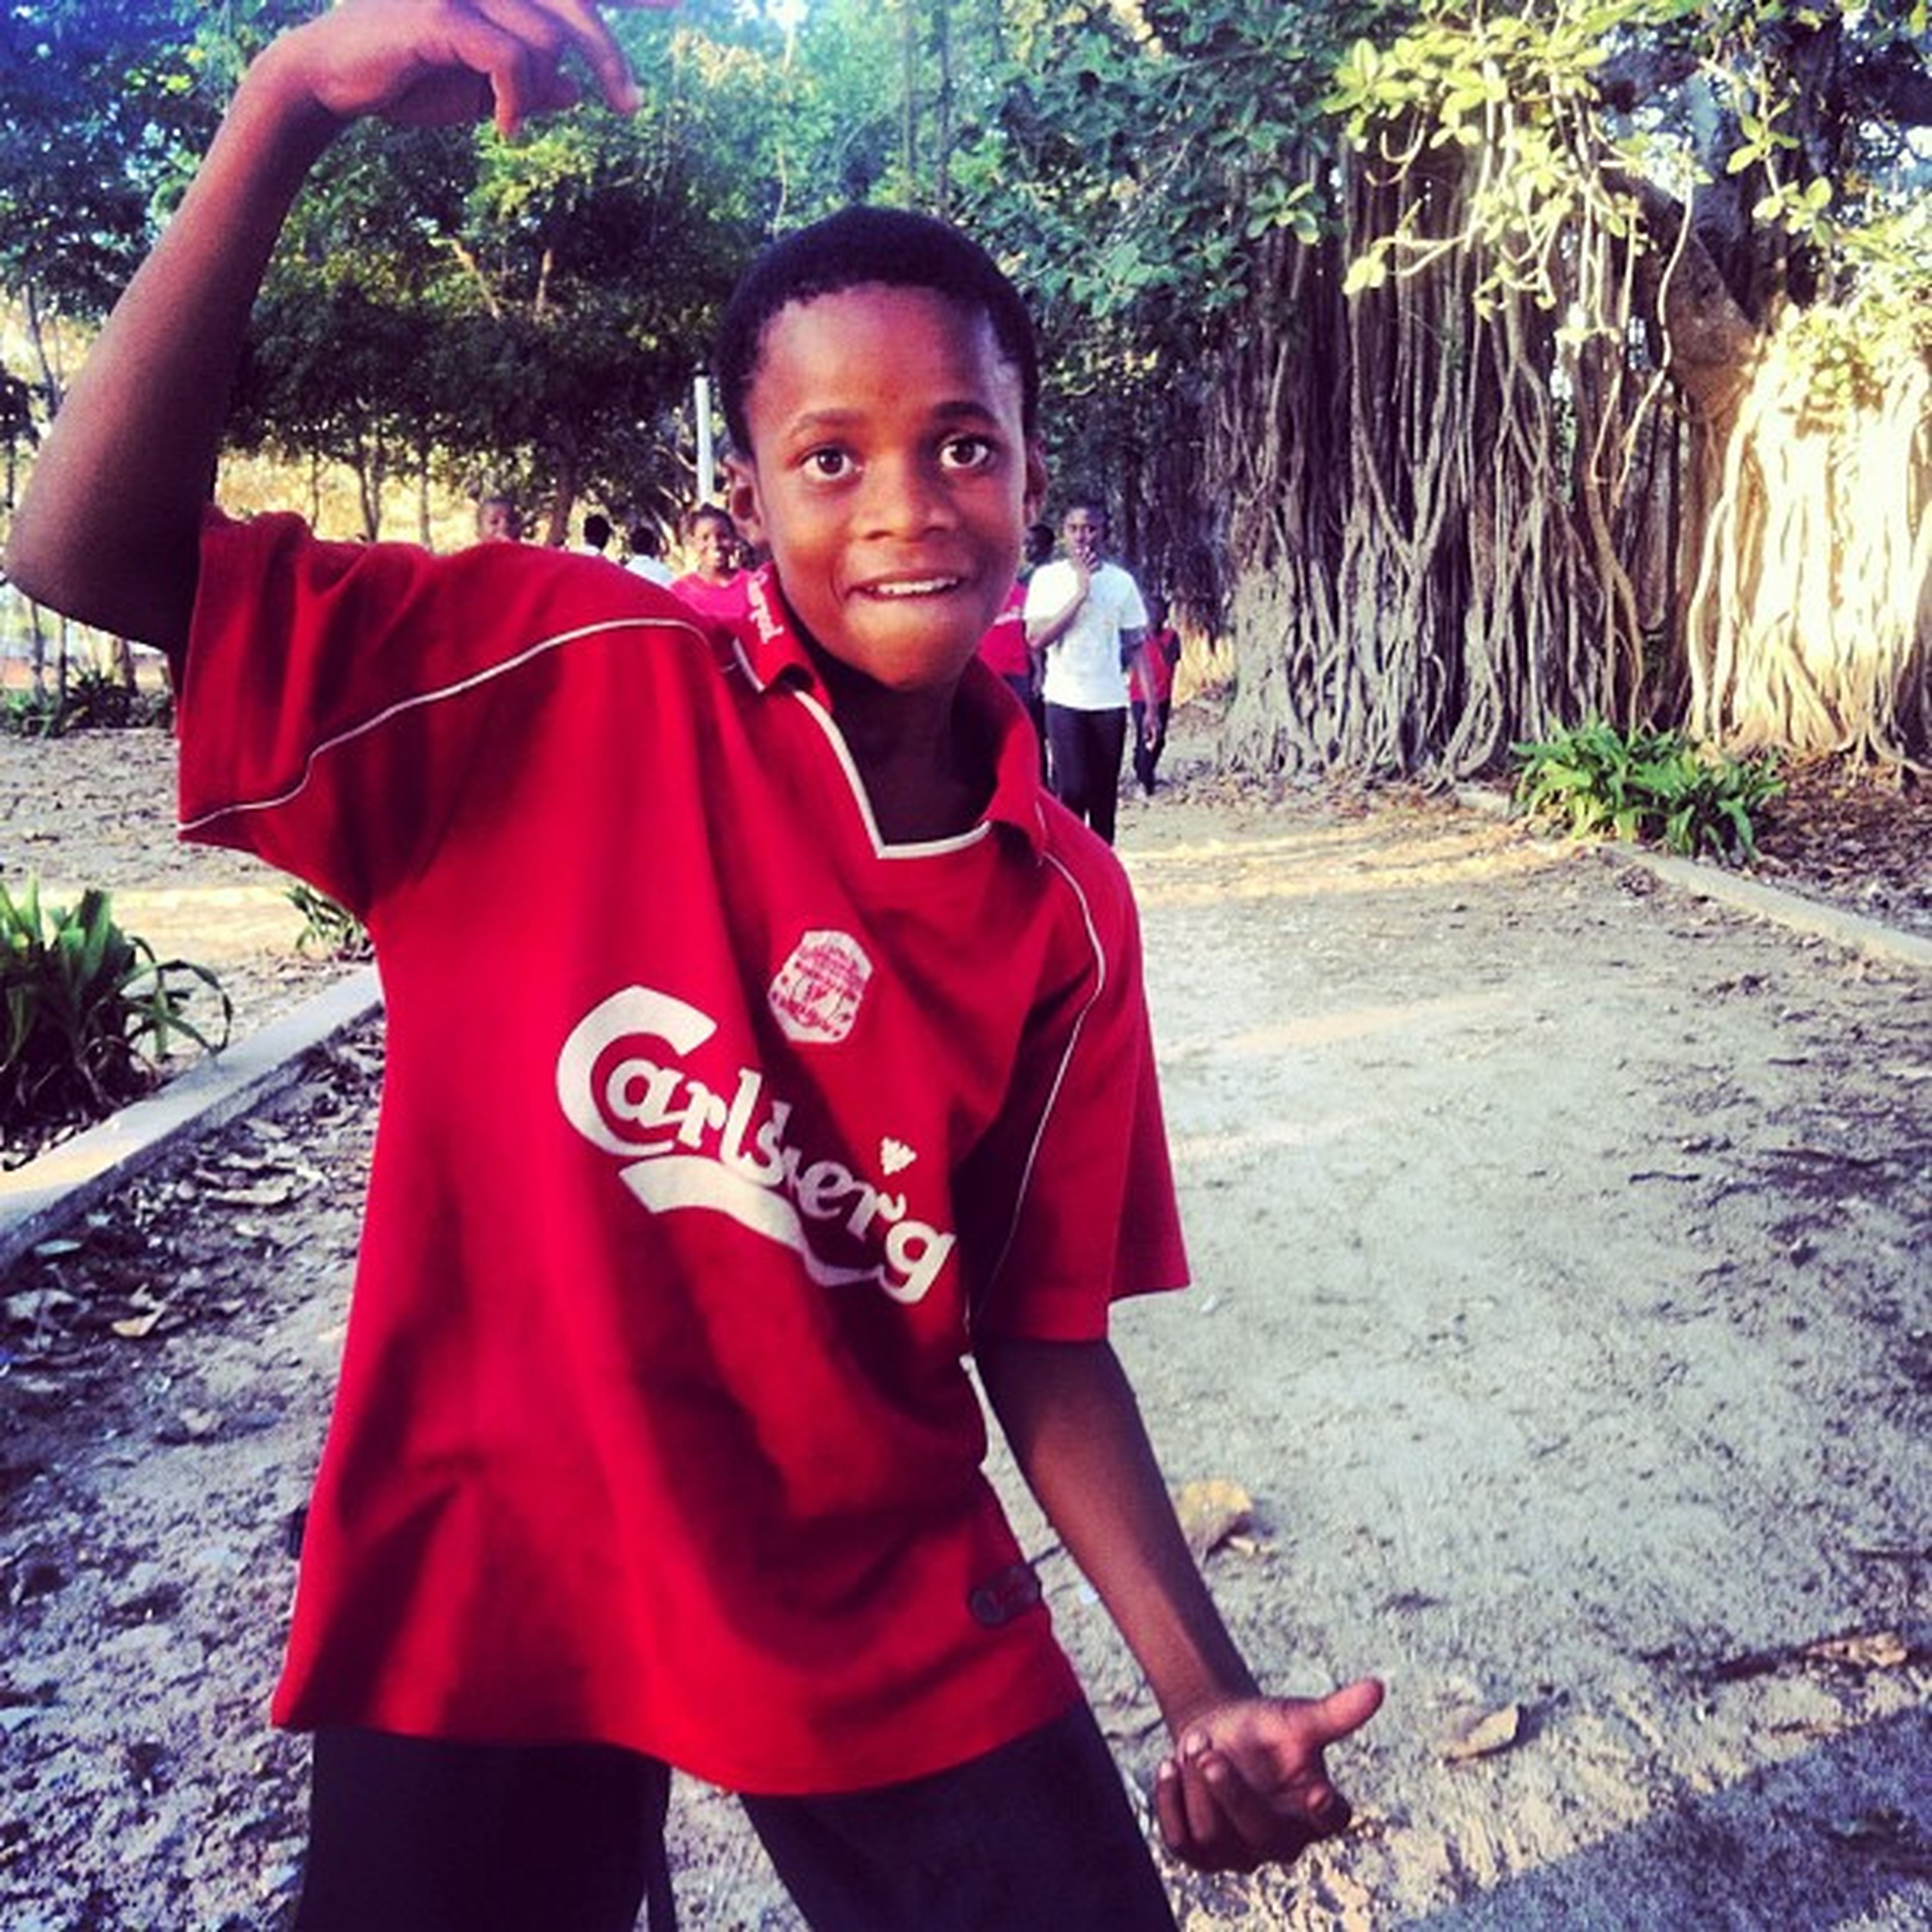 Starting a Tag Localsinliverpoolshirts a collection of pics demonstrating the global reach of the greatest Football club in the world Liverpoolfc soccer this one was taken in mozambique moztravel please post yours and use the above tag travel transport instasport liverpoolfootballclub